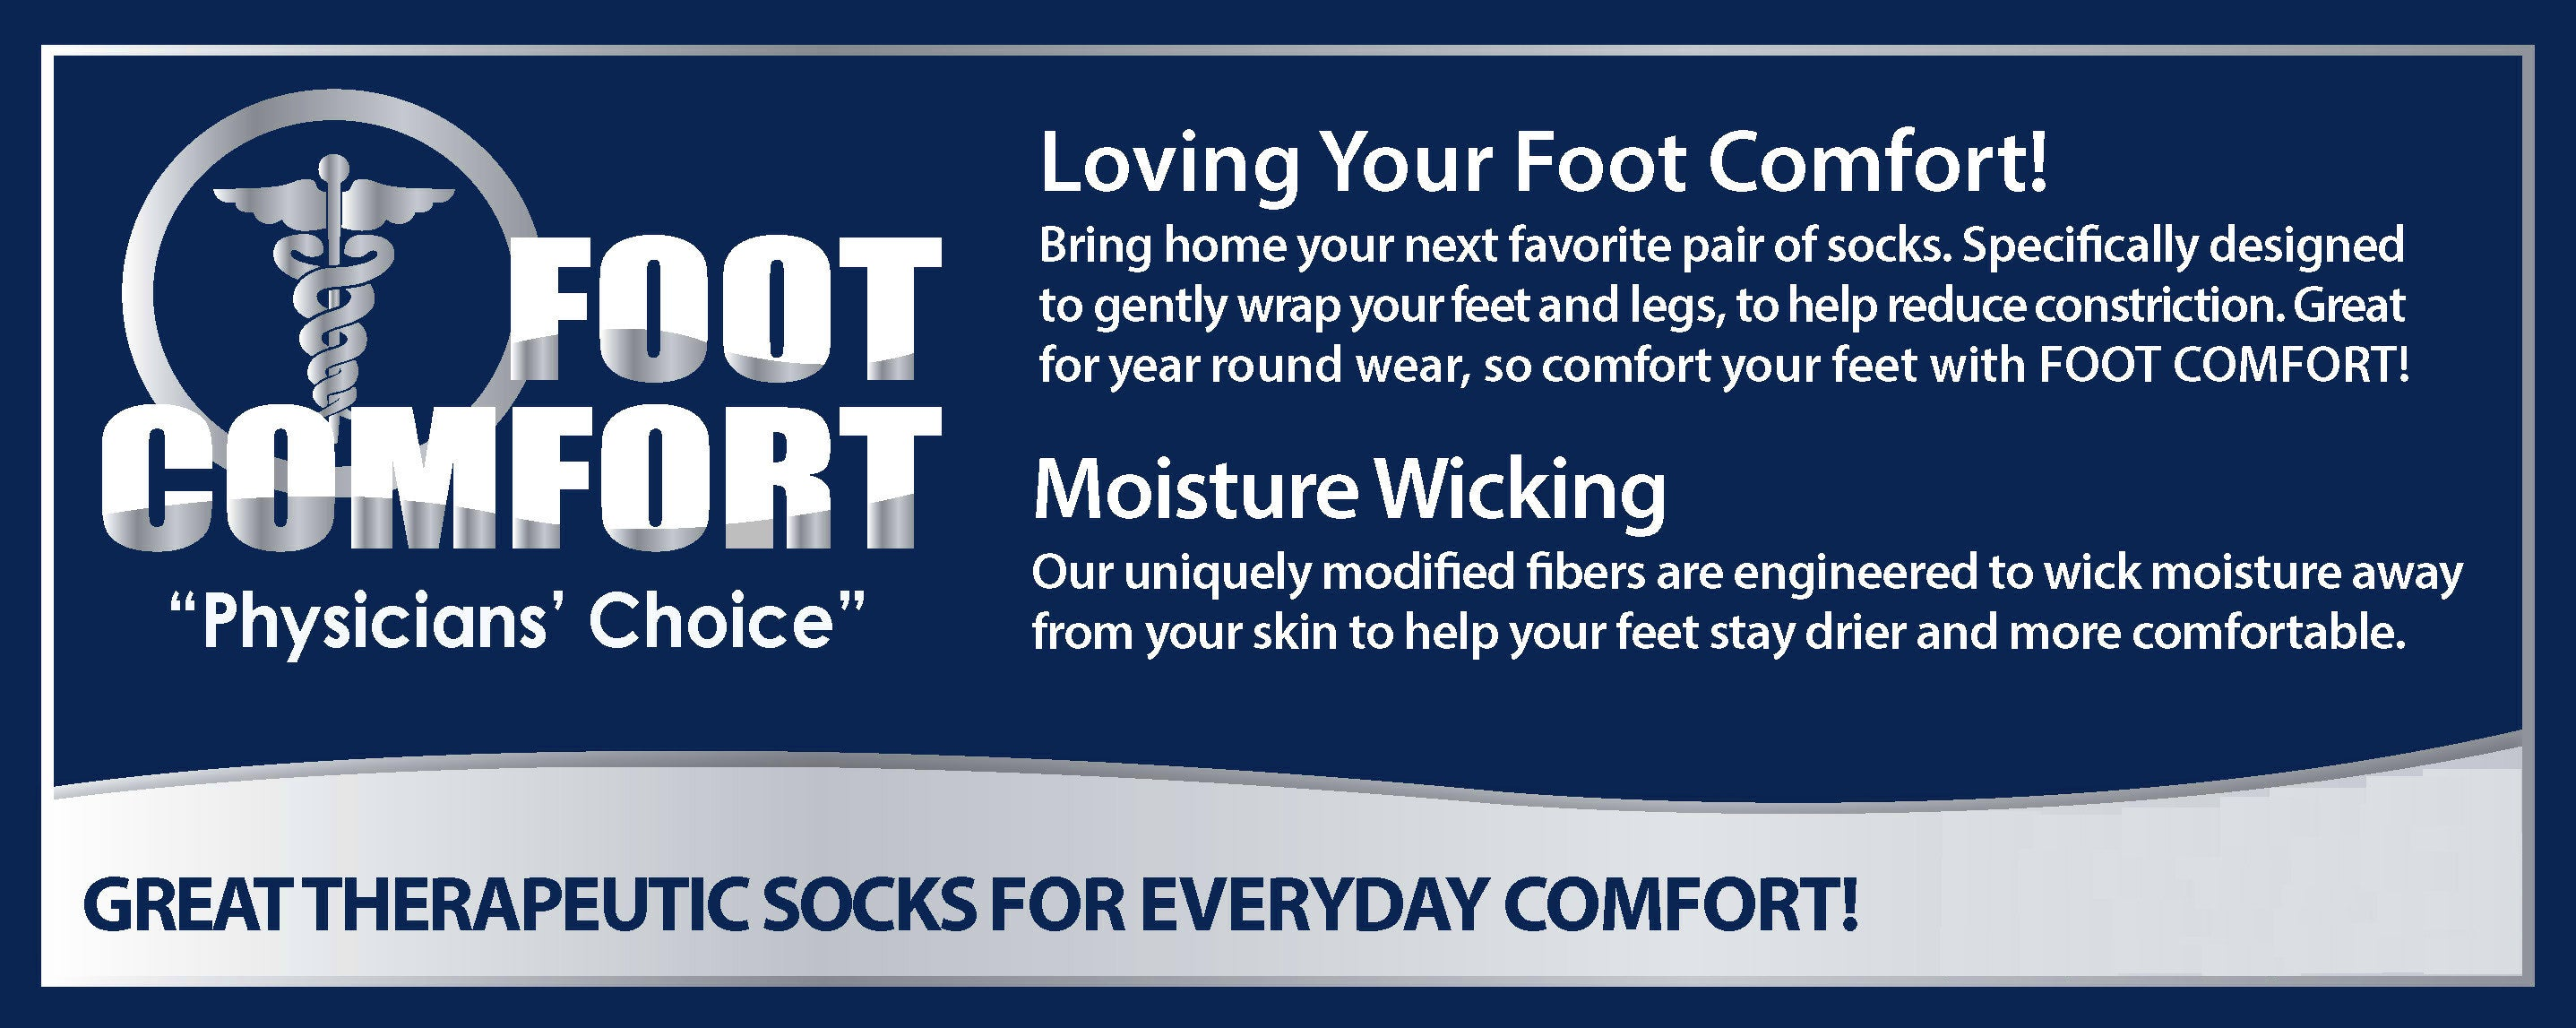 Foot Comfort Diabetic Care Khaki Quarter Socks